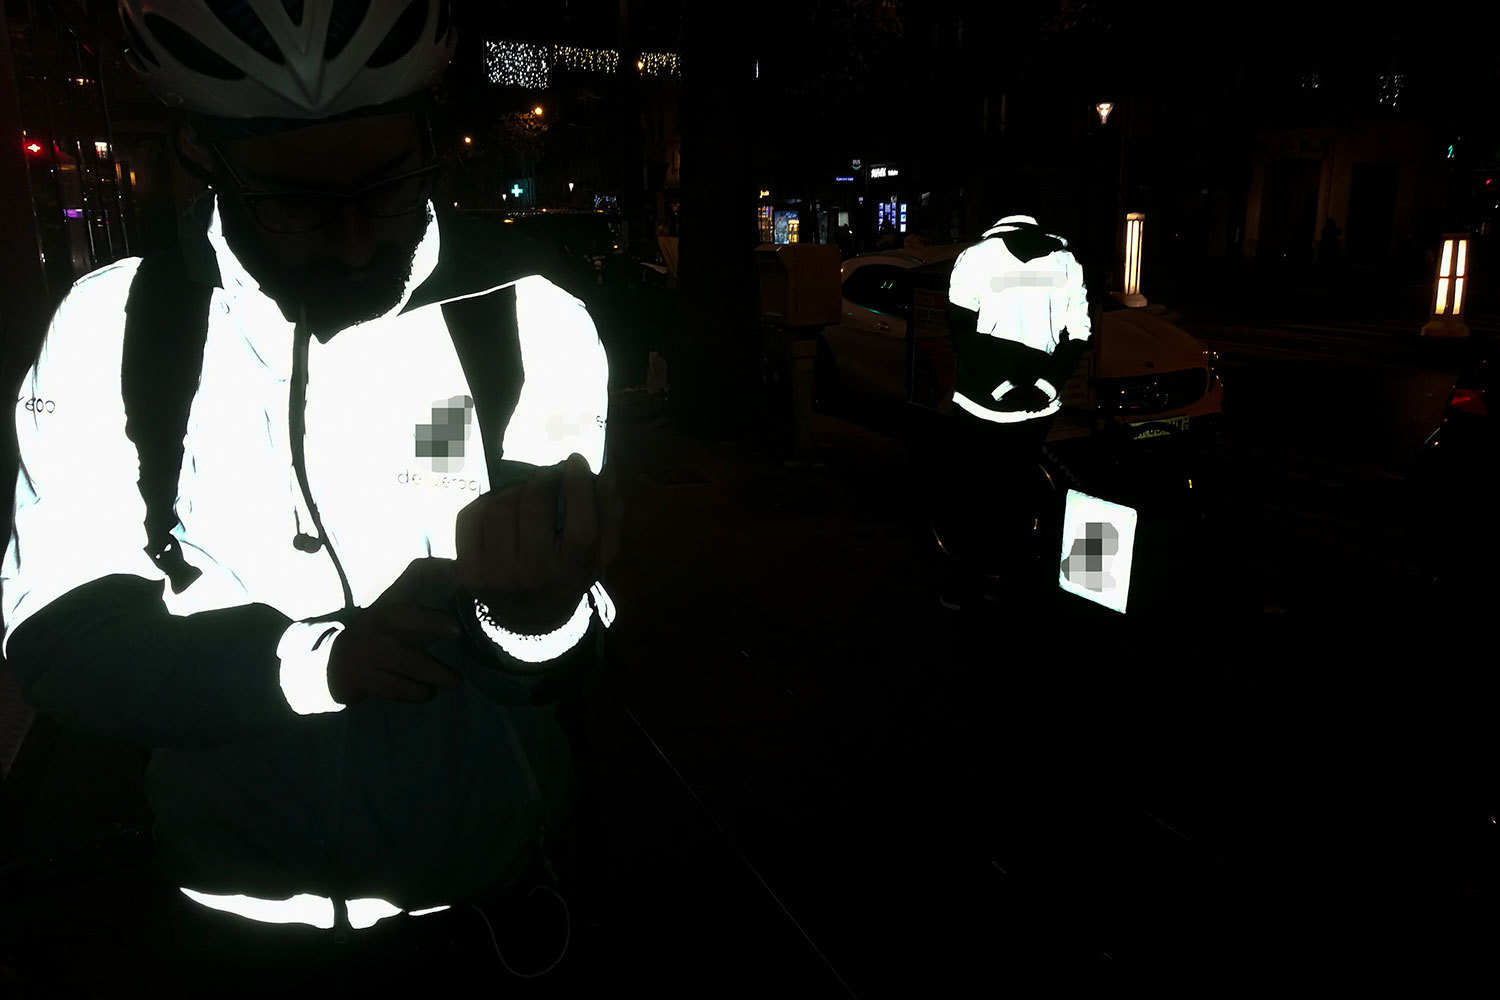 #deliver#phone#night#Paris#bike#shift#work#speed# December 2016. Paris. Bike delivery person, Laura Ben Hayoun, Audiovisual Library of the European Commission, CC BY-NC-ND